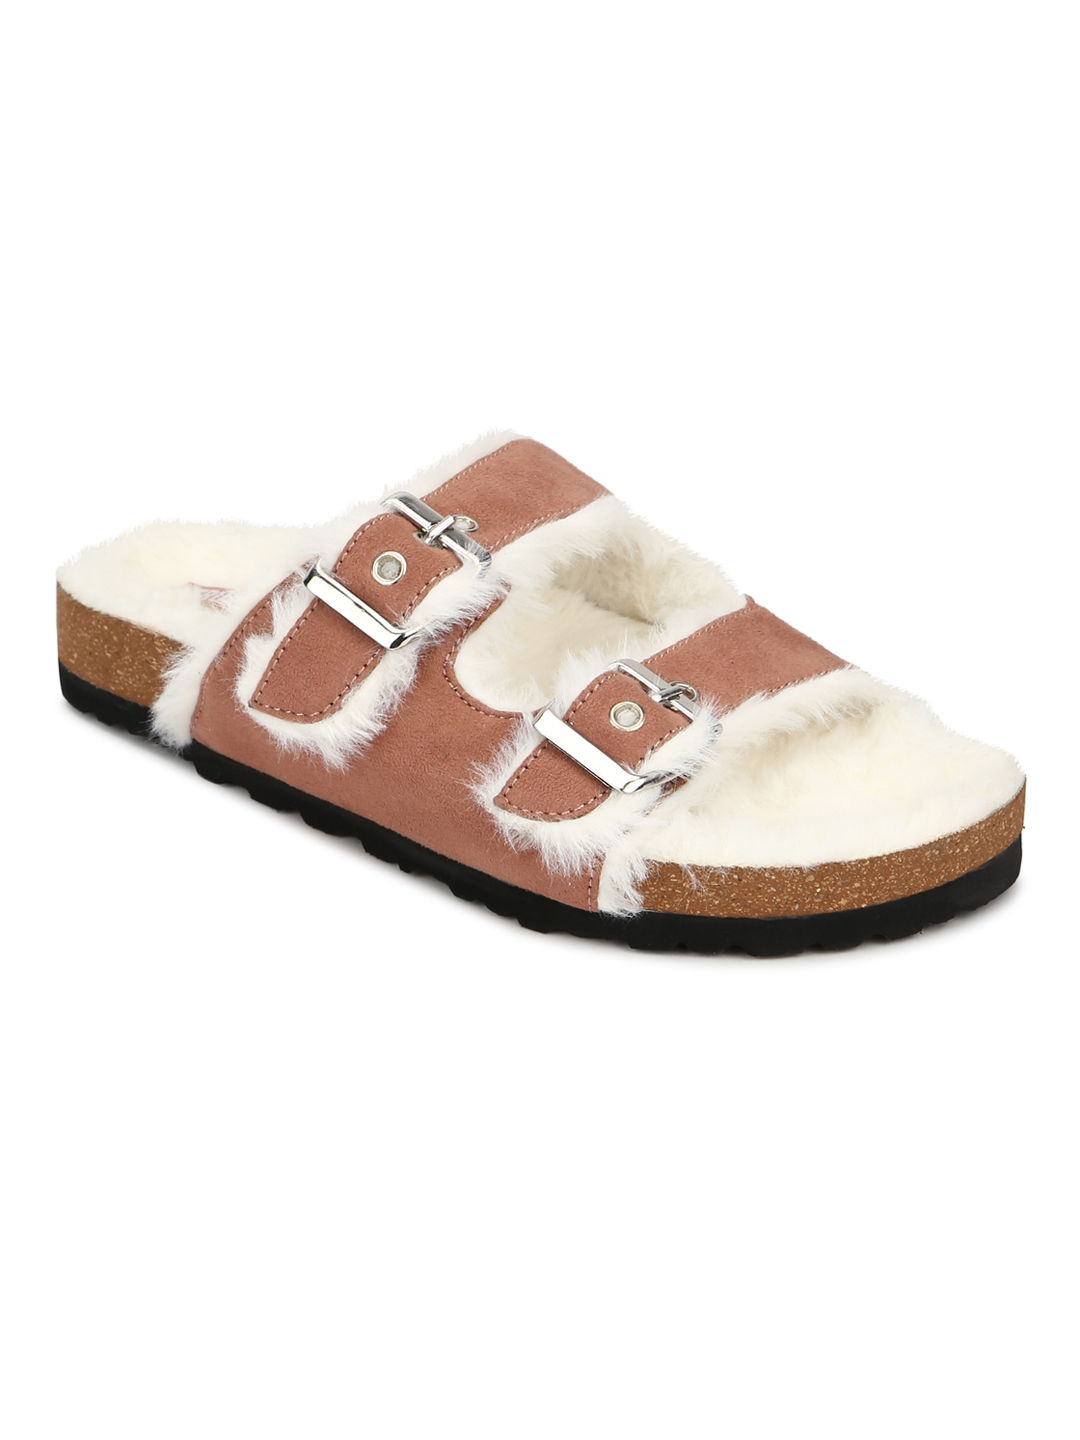 Truffle Collection | Truffle Collection Nude Furry Cork Sandals With Buckle